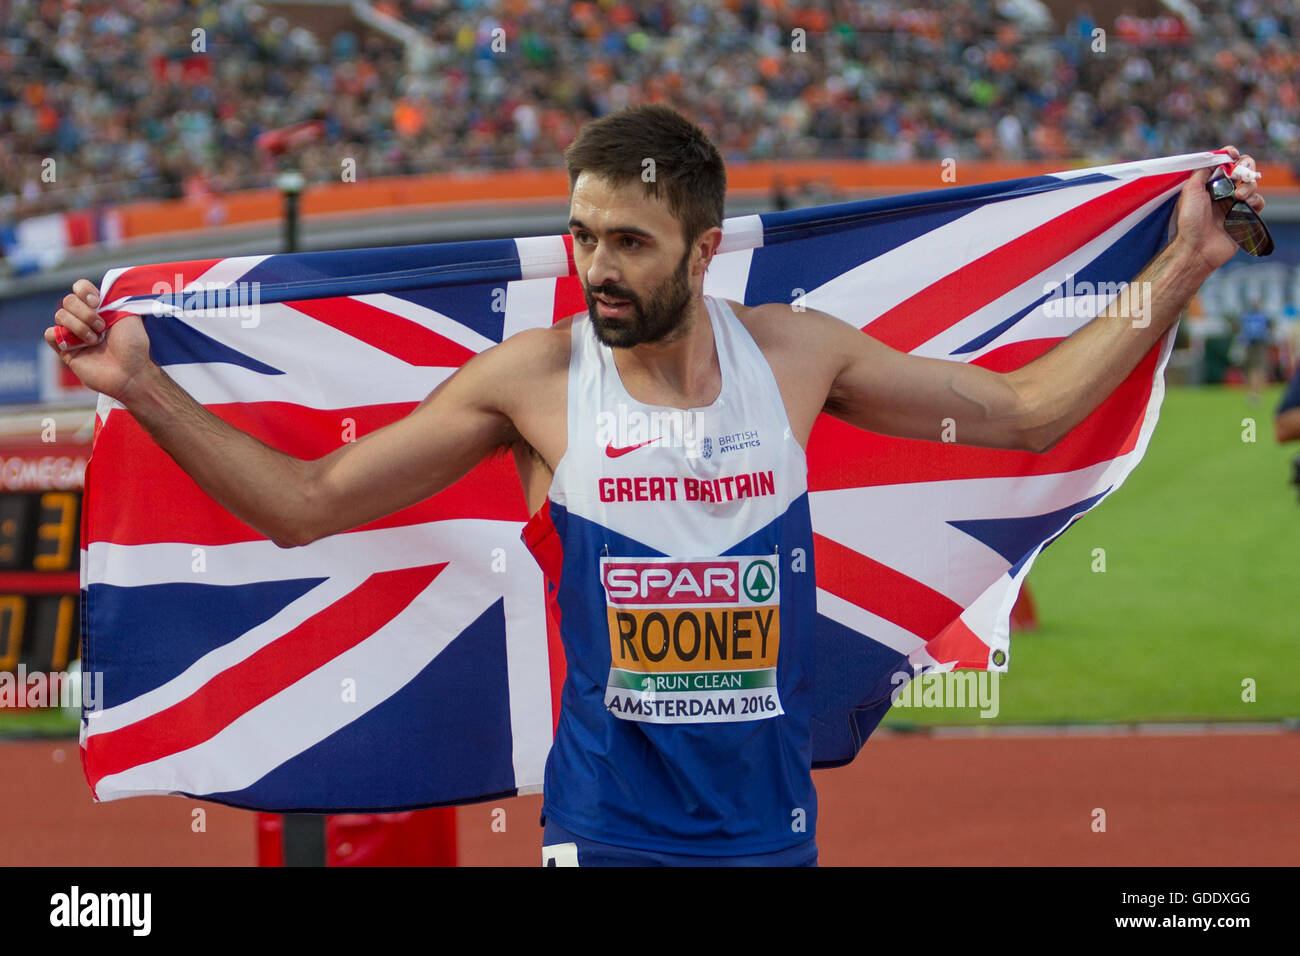 91cb4c29119 Amsterdam, Holland. 09th July, 2016. The European Athletics Championships.  Martyn Rooney (GBR) 400 metes winner © Action Plus Sports/Alamy Live News